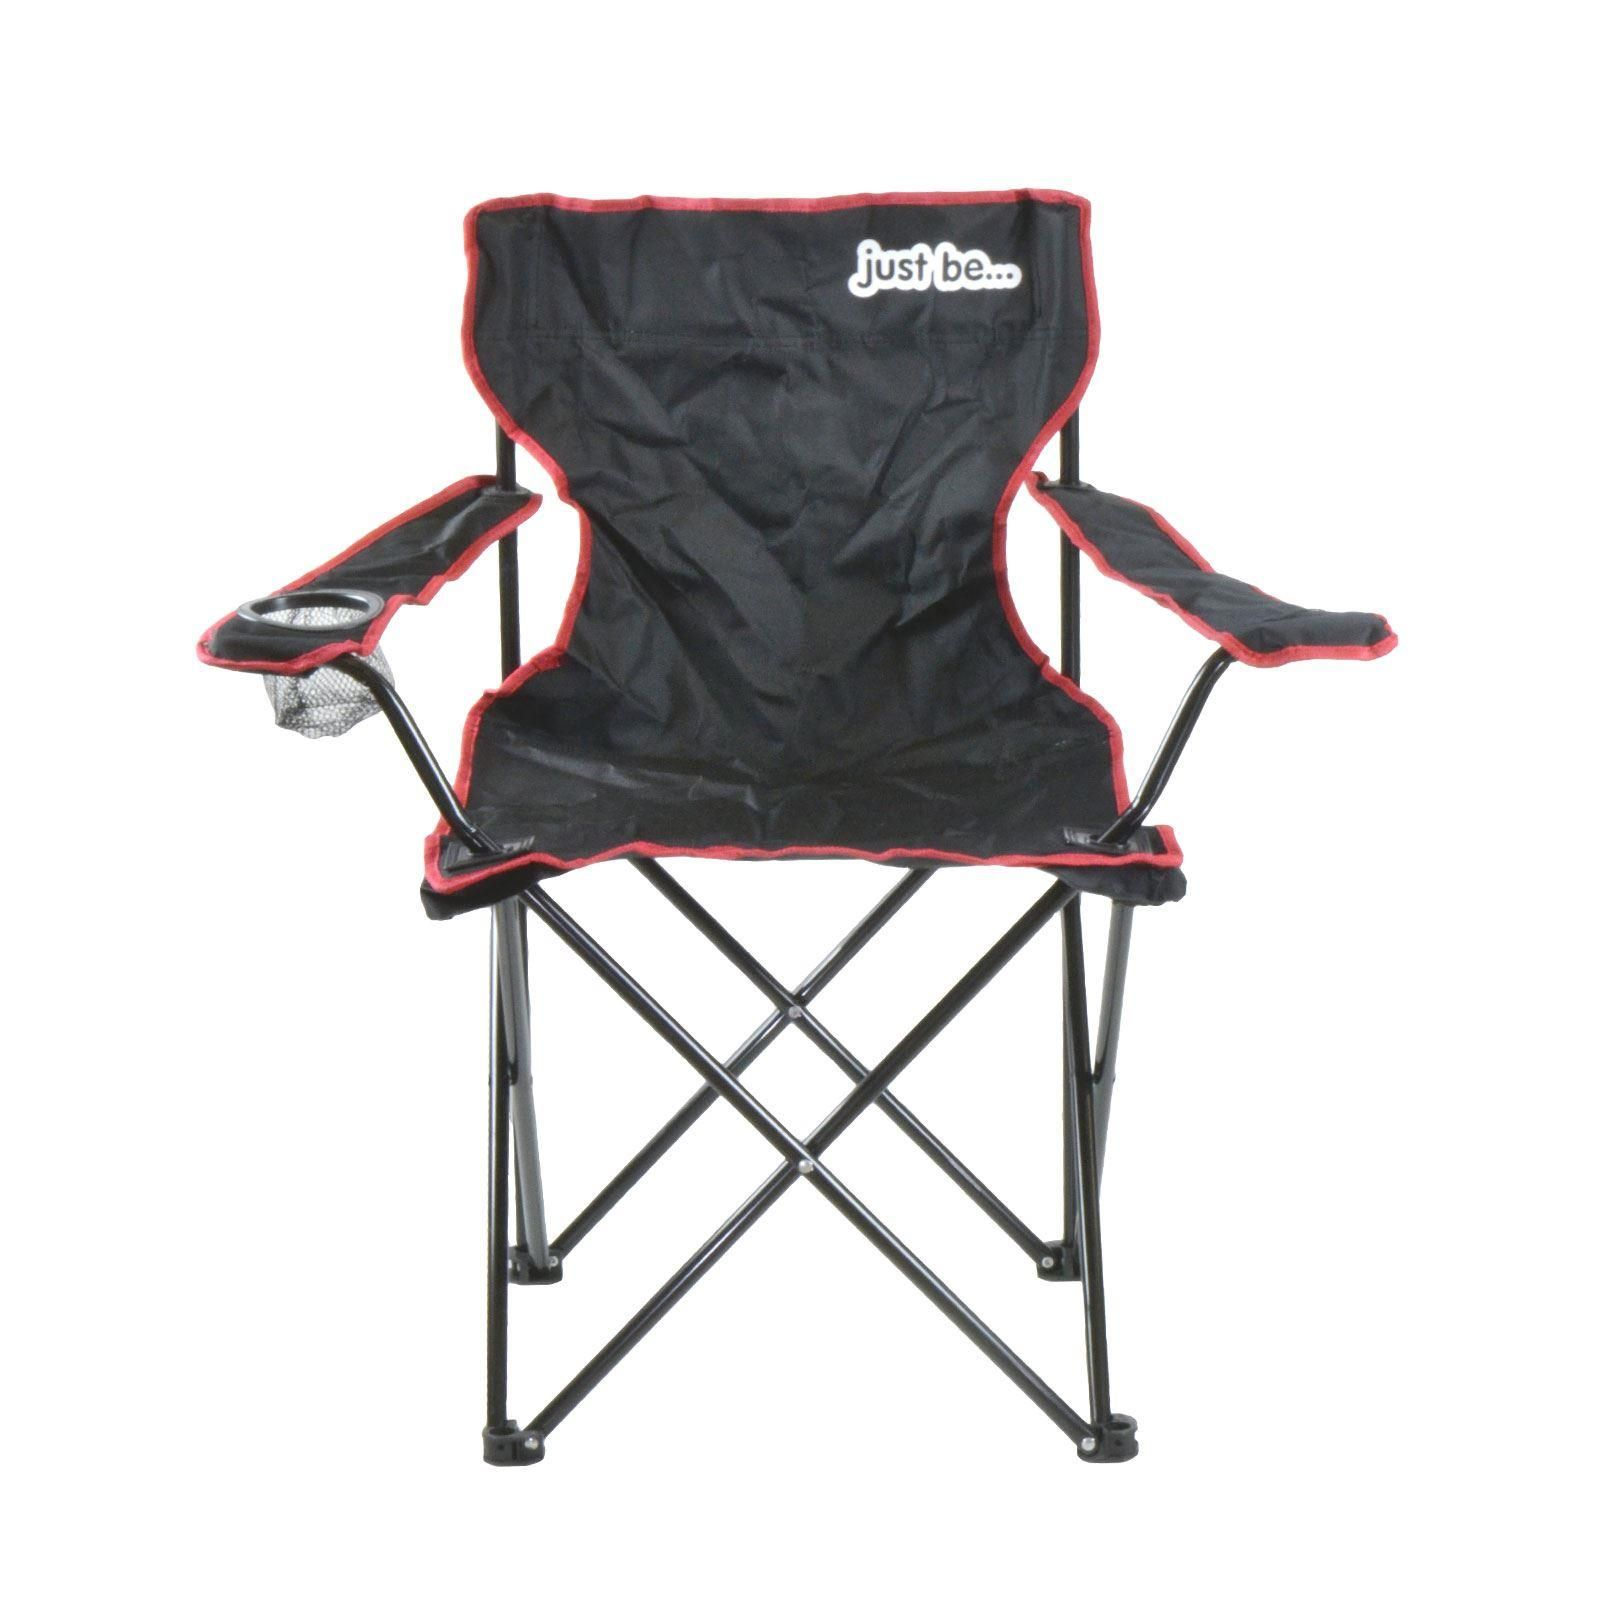 just be Black Foldable Camping Chair Red Trim